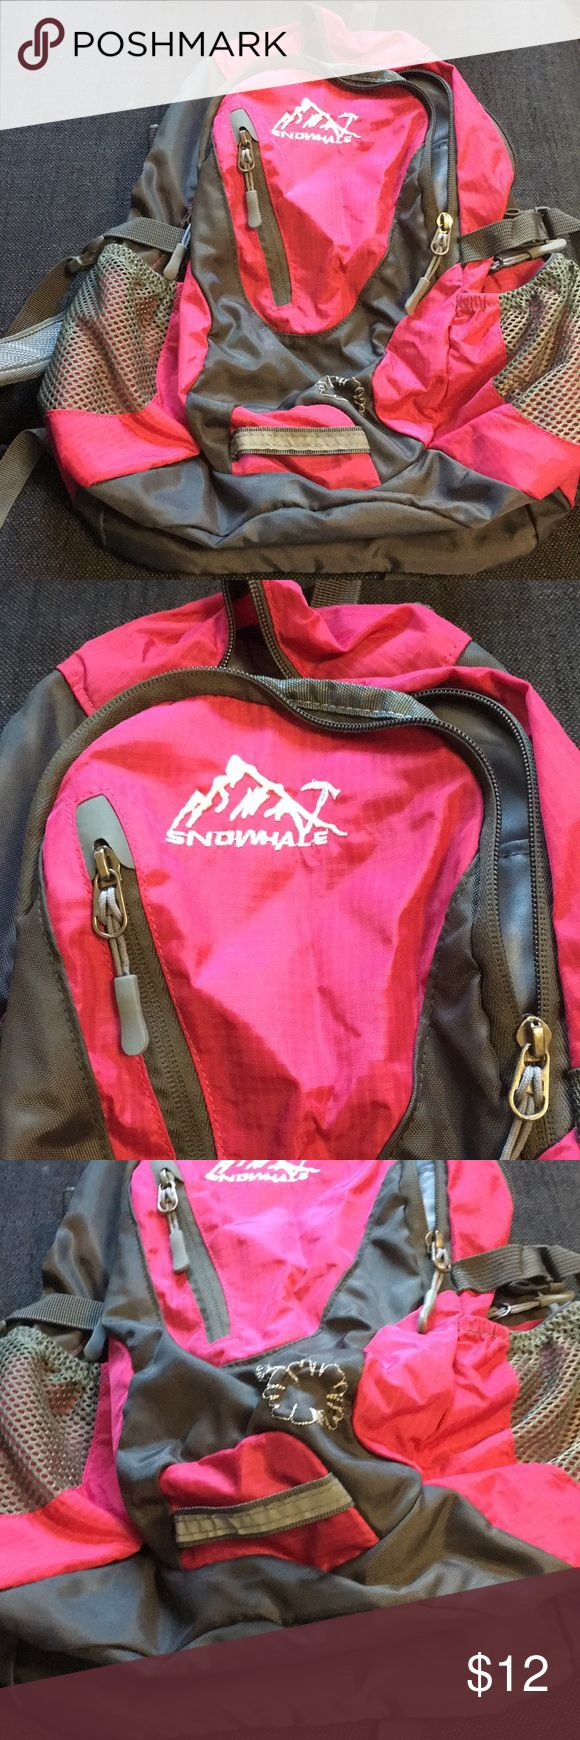 Small Hiking Backpack Perfect for day trips. Only used once. Great condition. Bags Backpacks